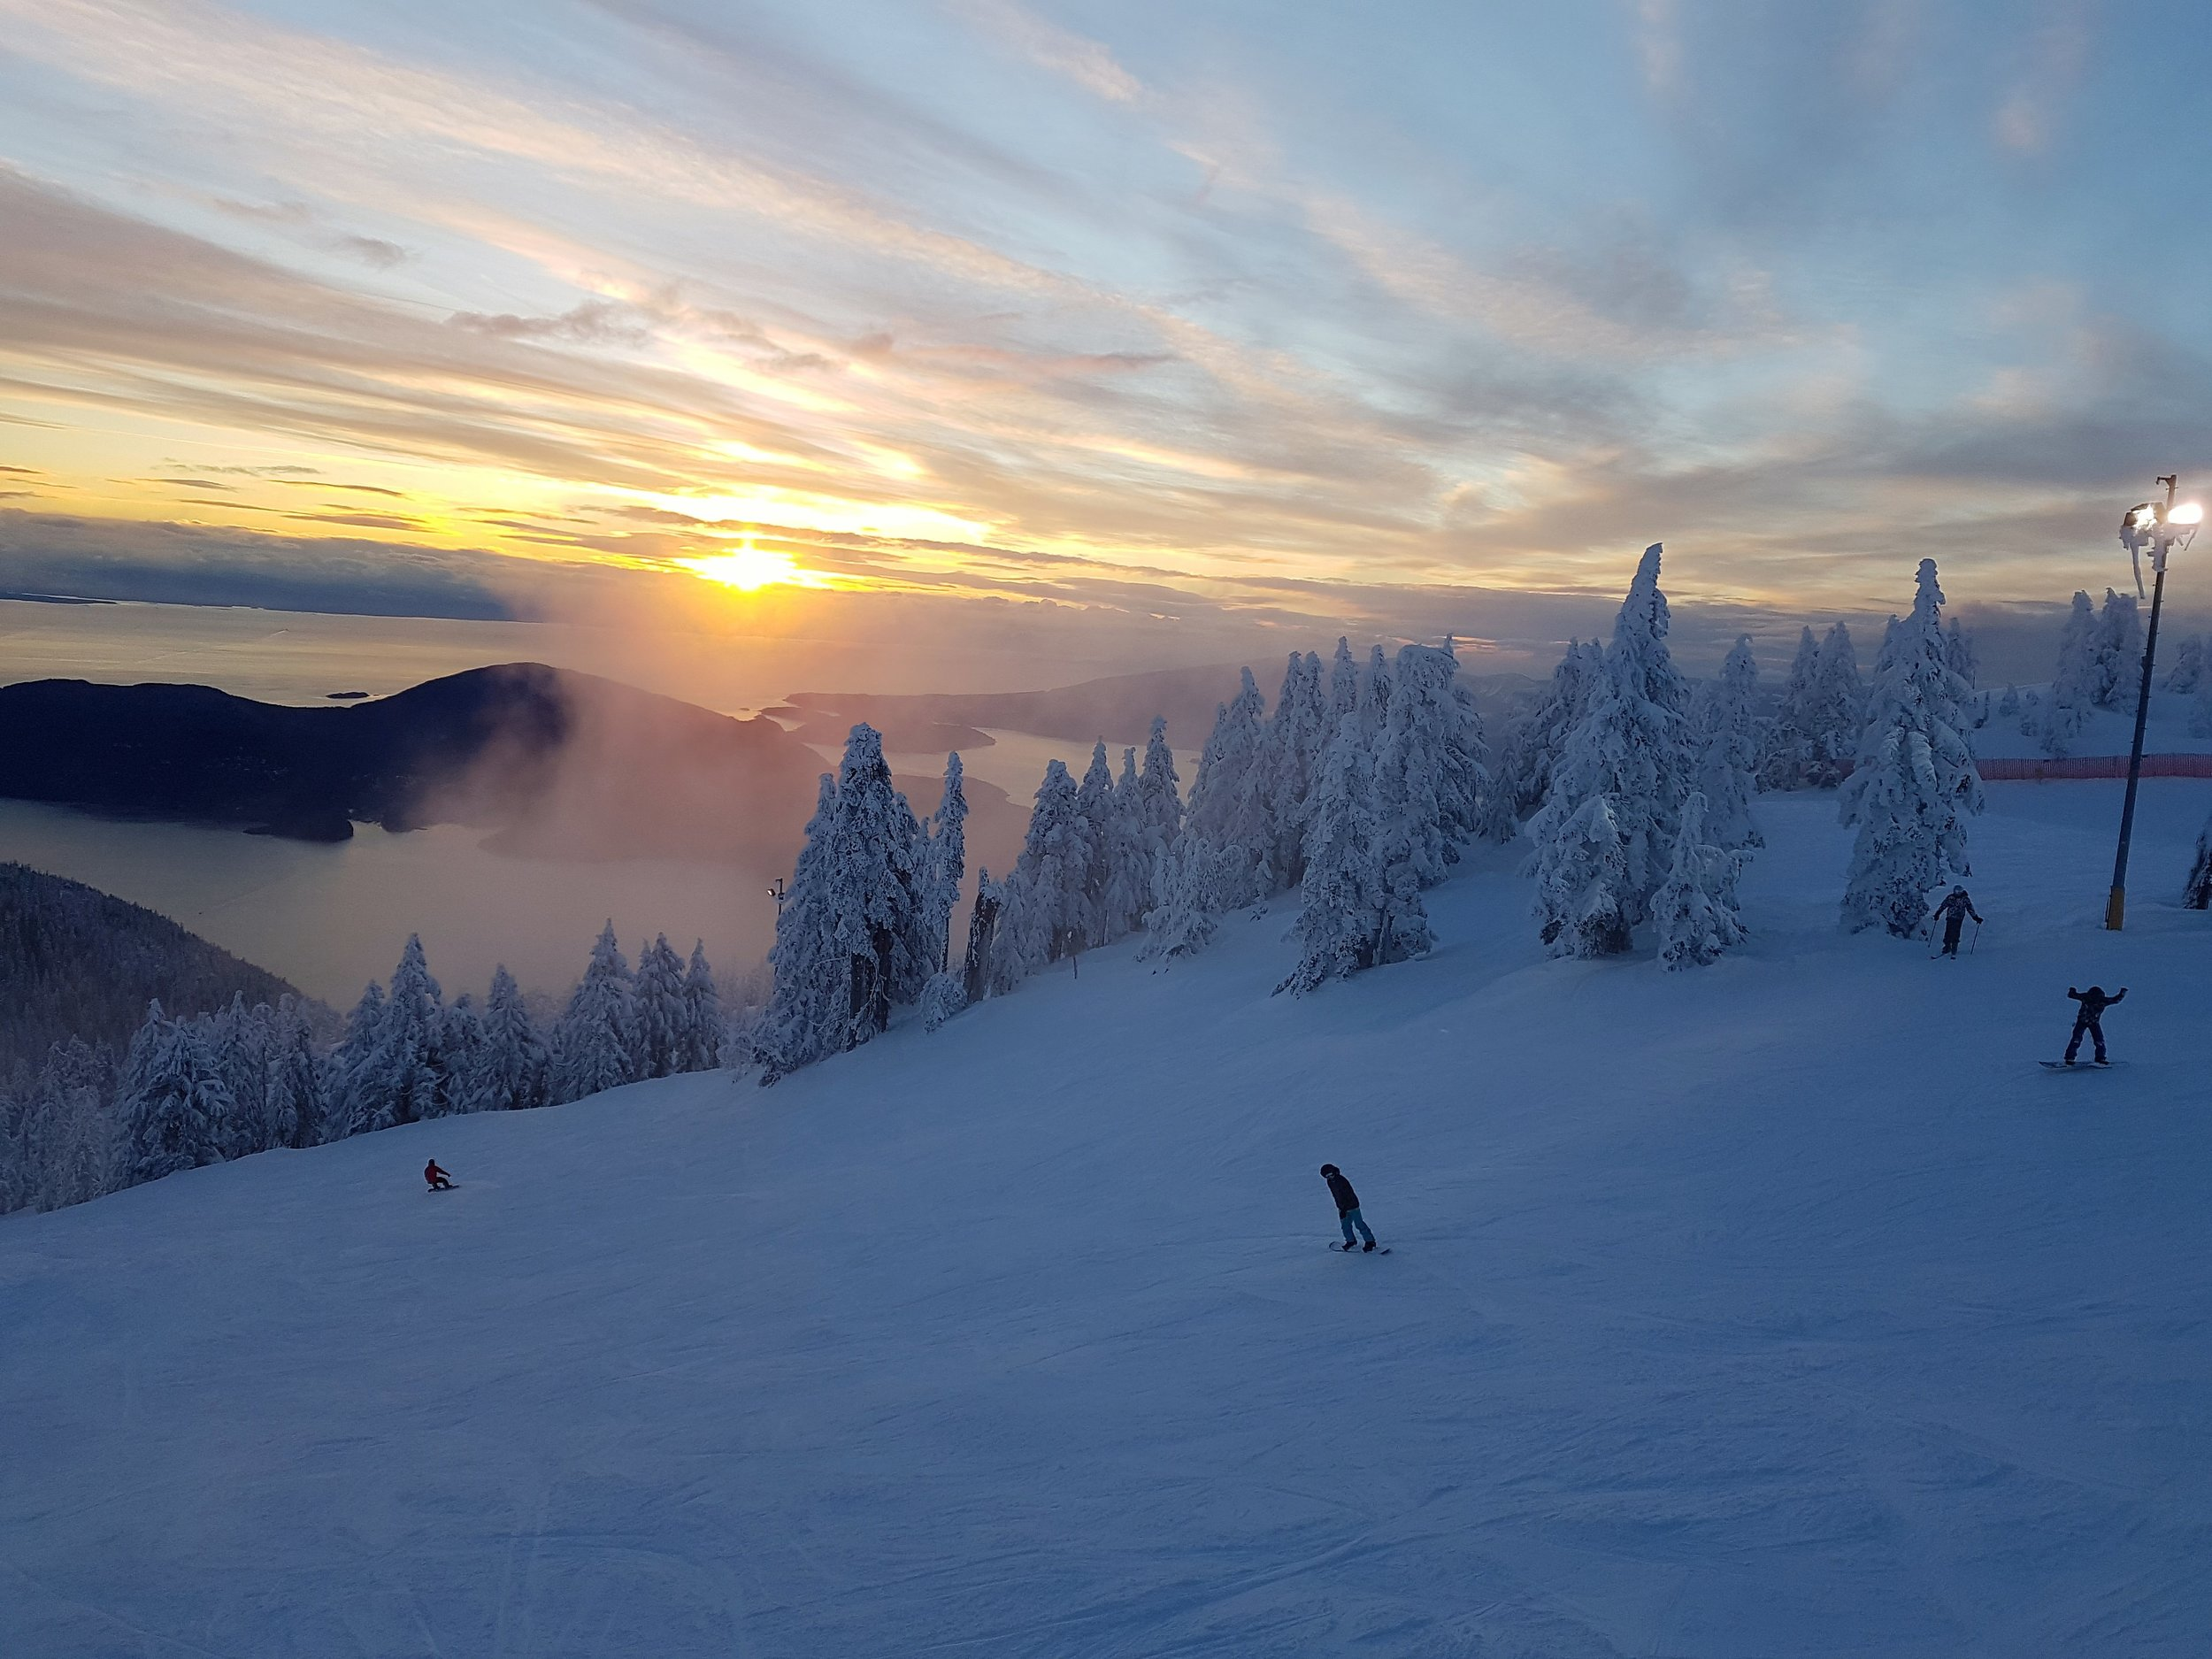 Skiing with a view of the ocean